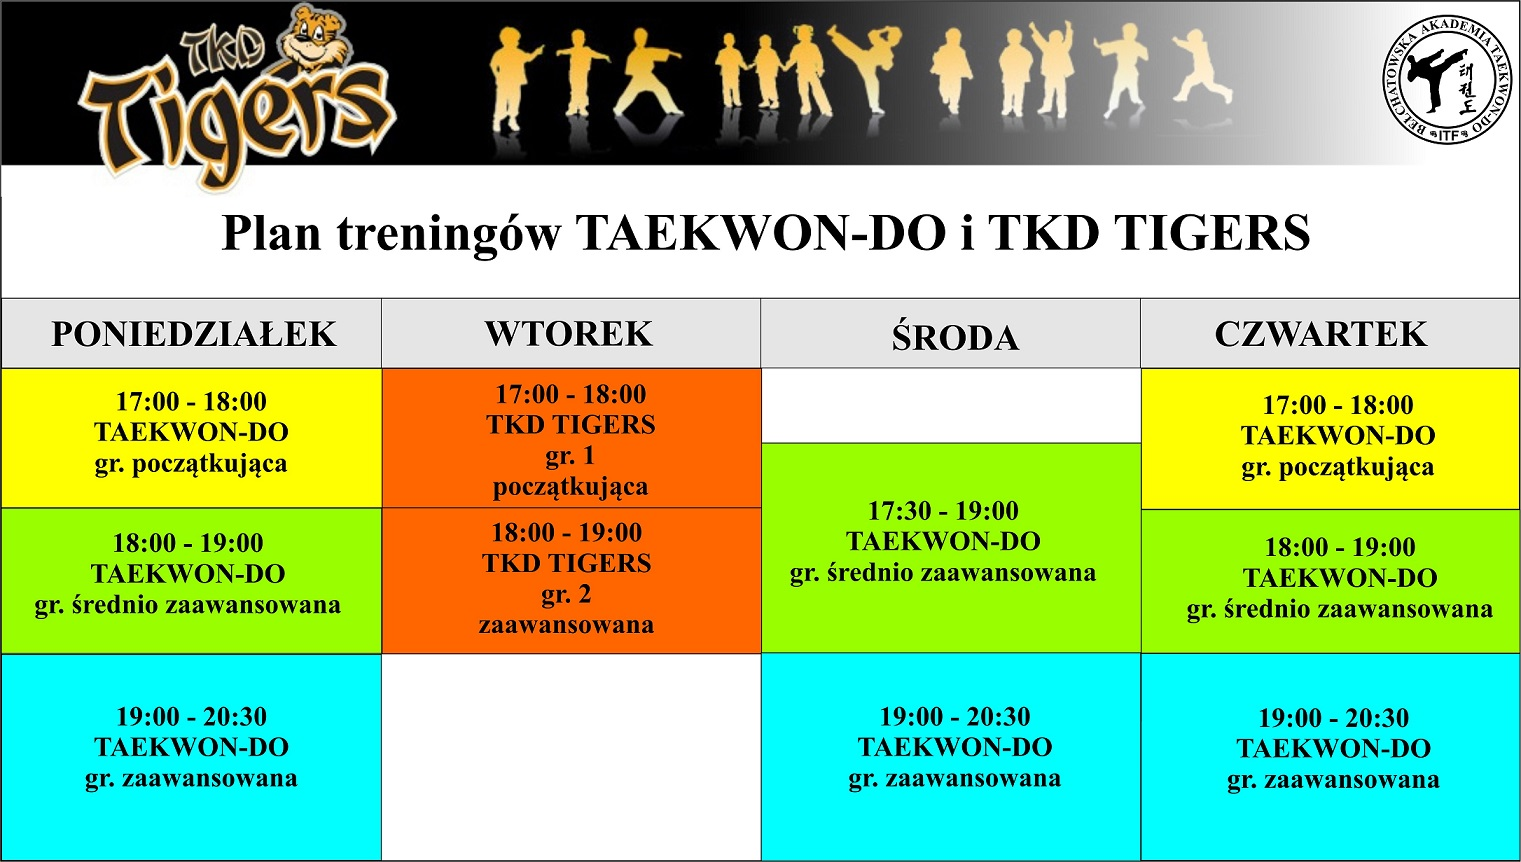 PLAN TRENINGÓW TAEKWON-DO 2018-2019